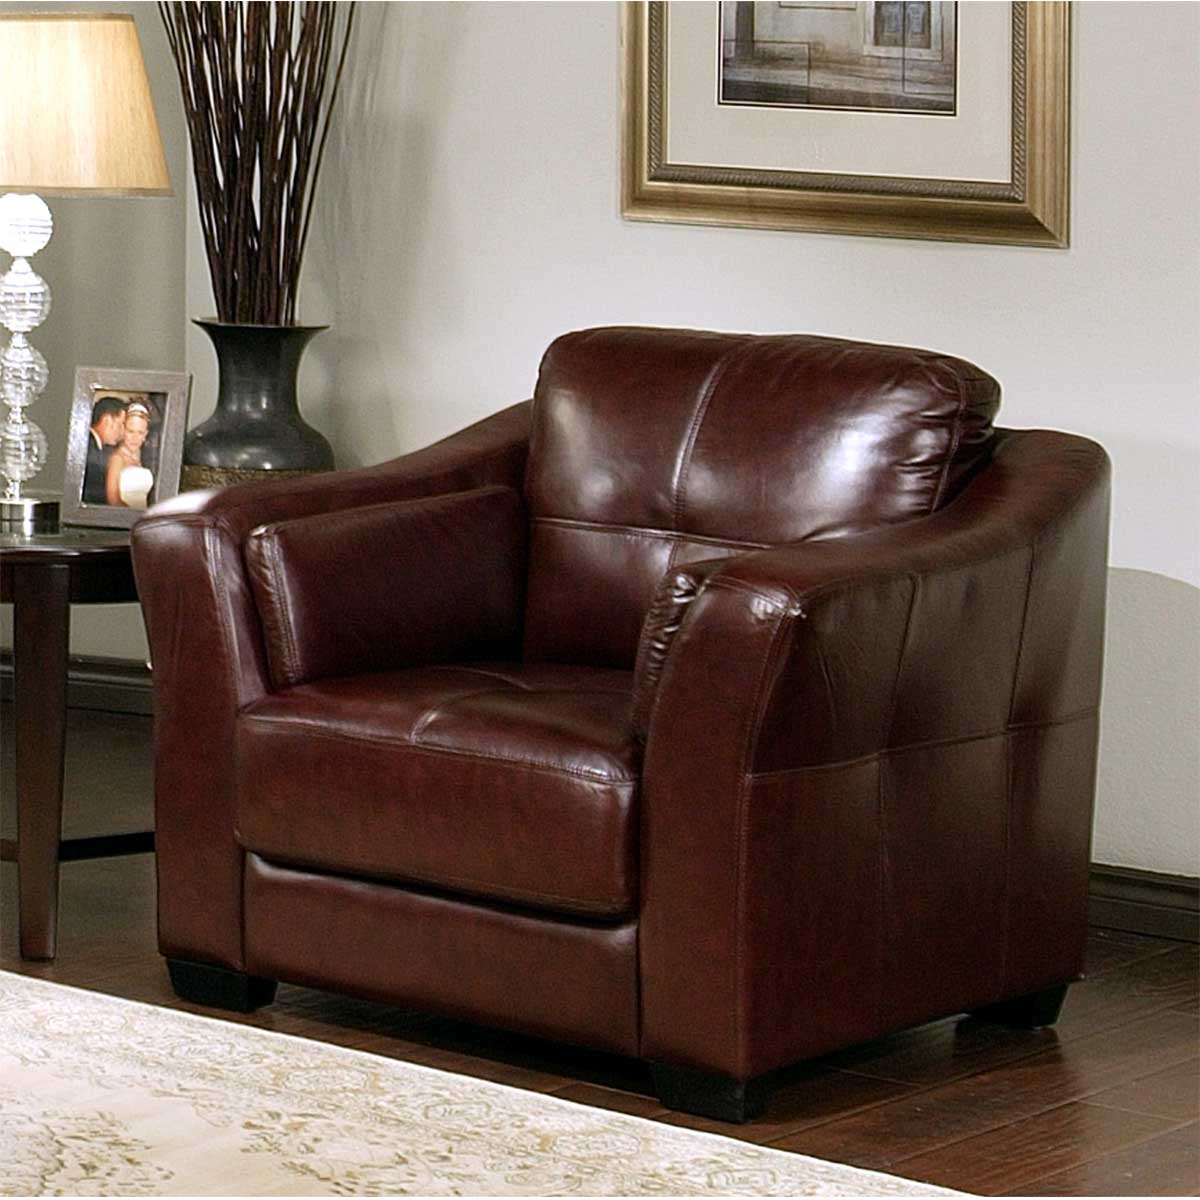 Furniture Living Room Furniture Arm Chair Leather Italian Arm